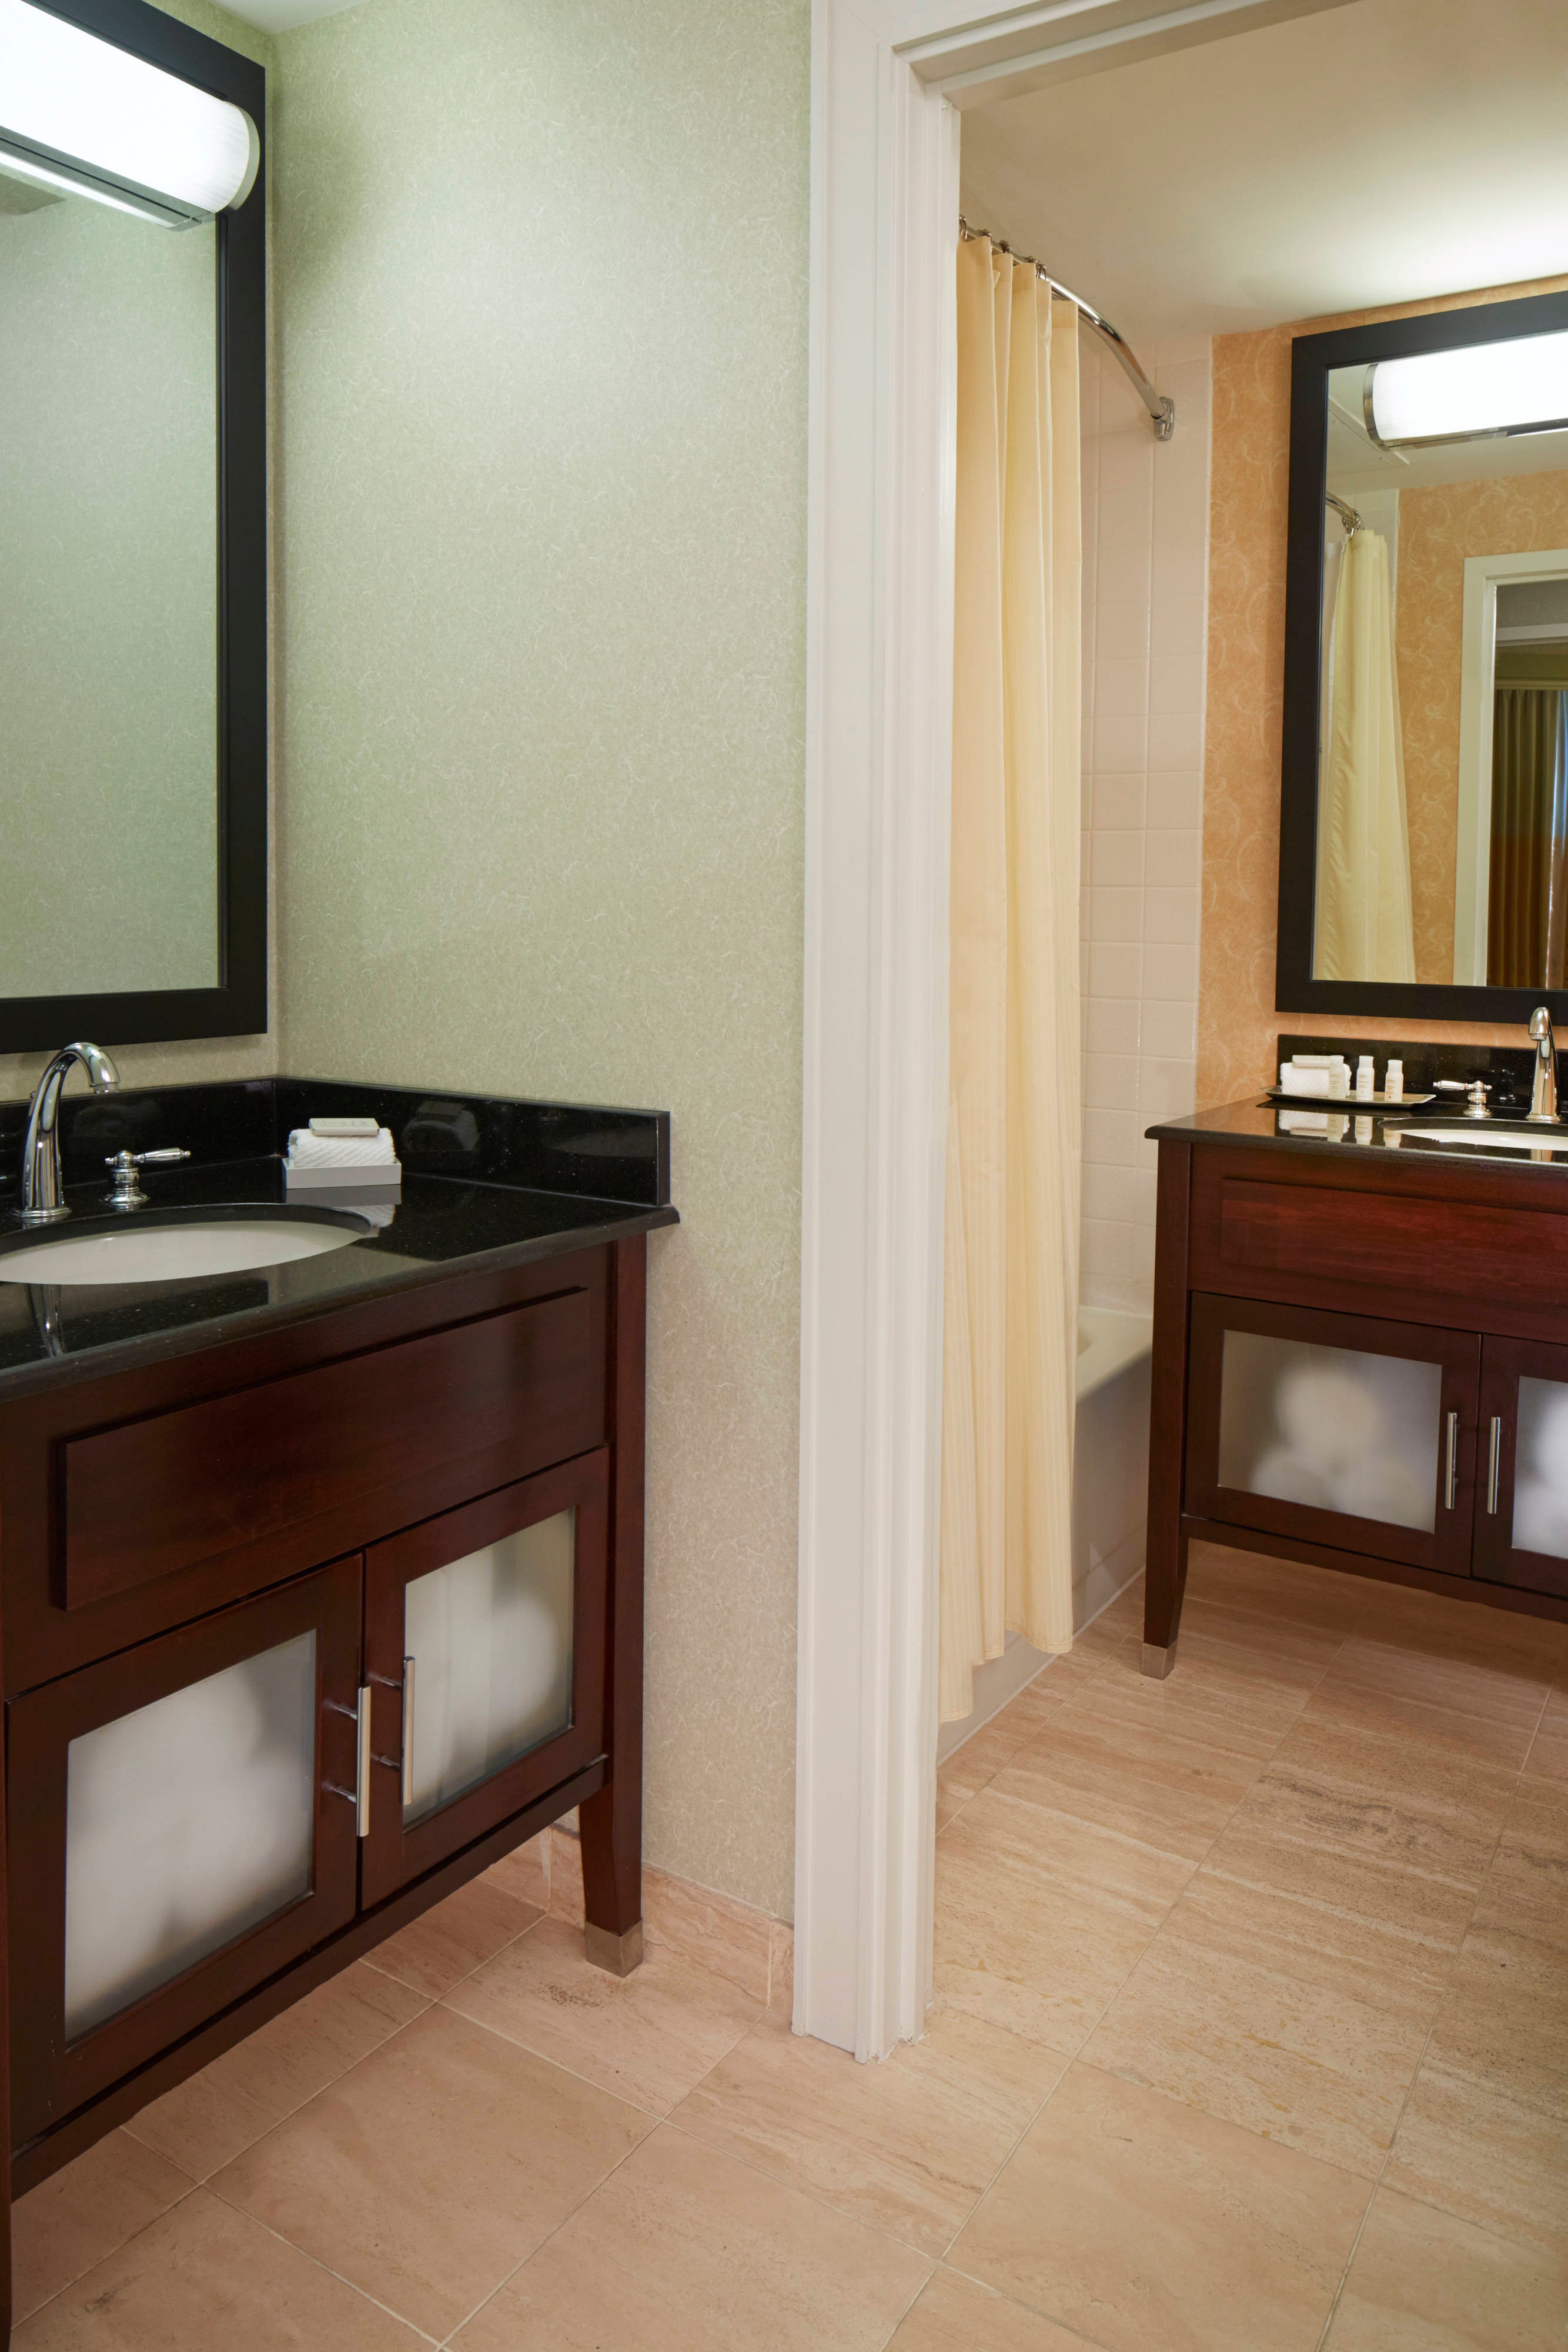 Dallas Luxury Hotel Rooms